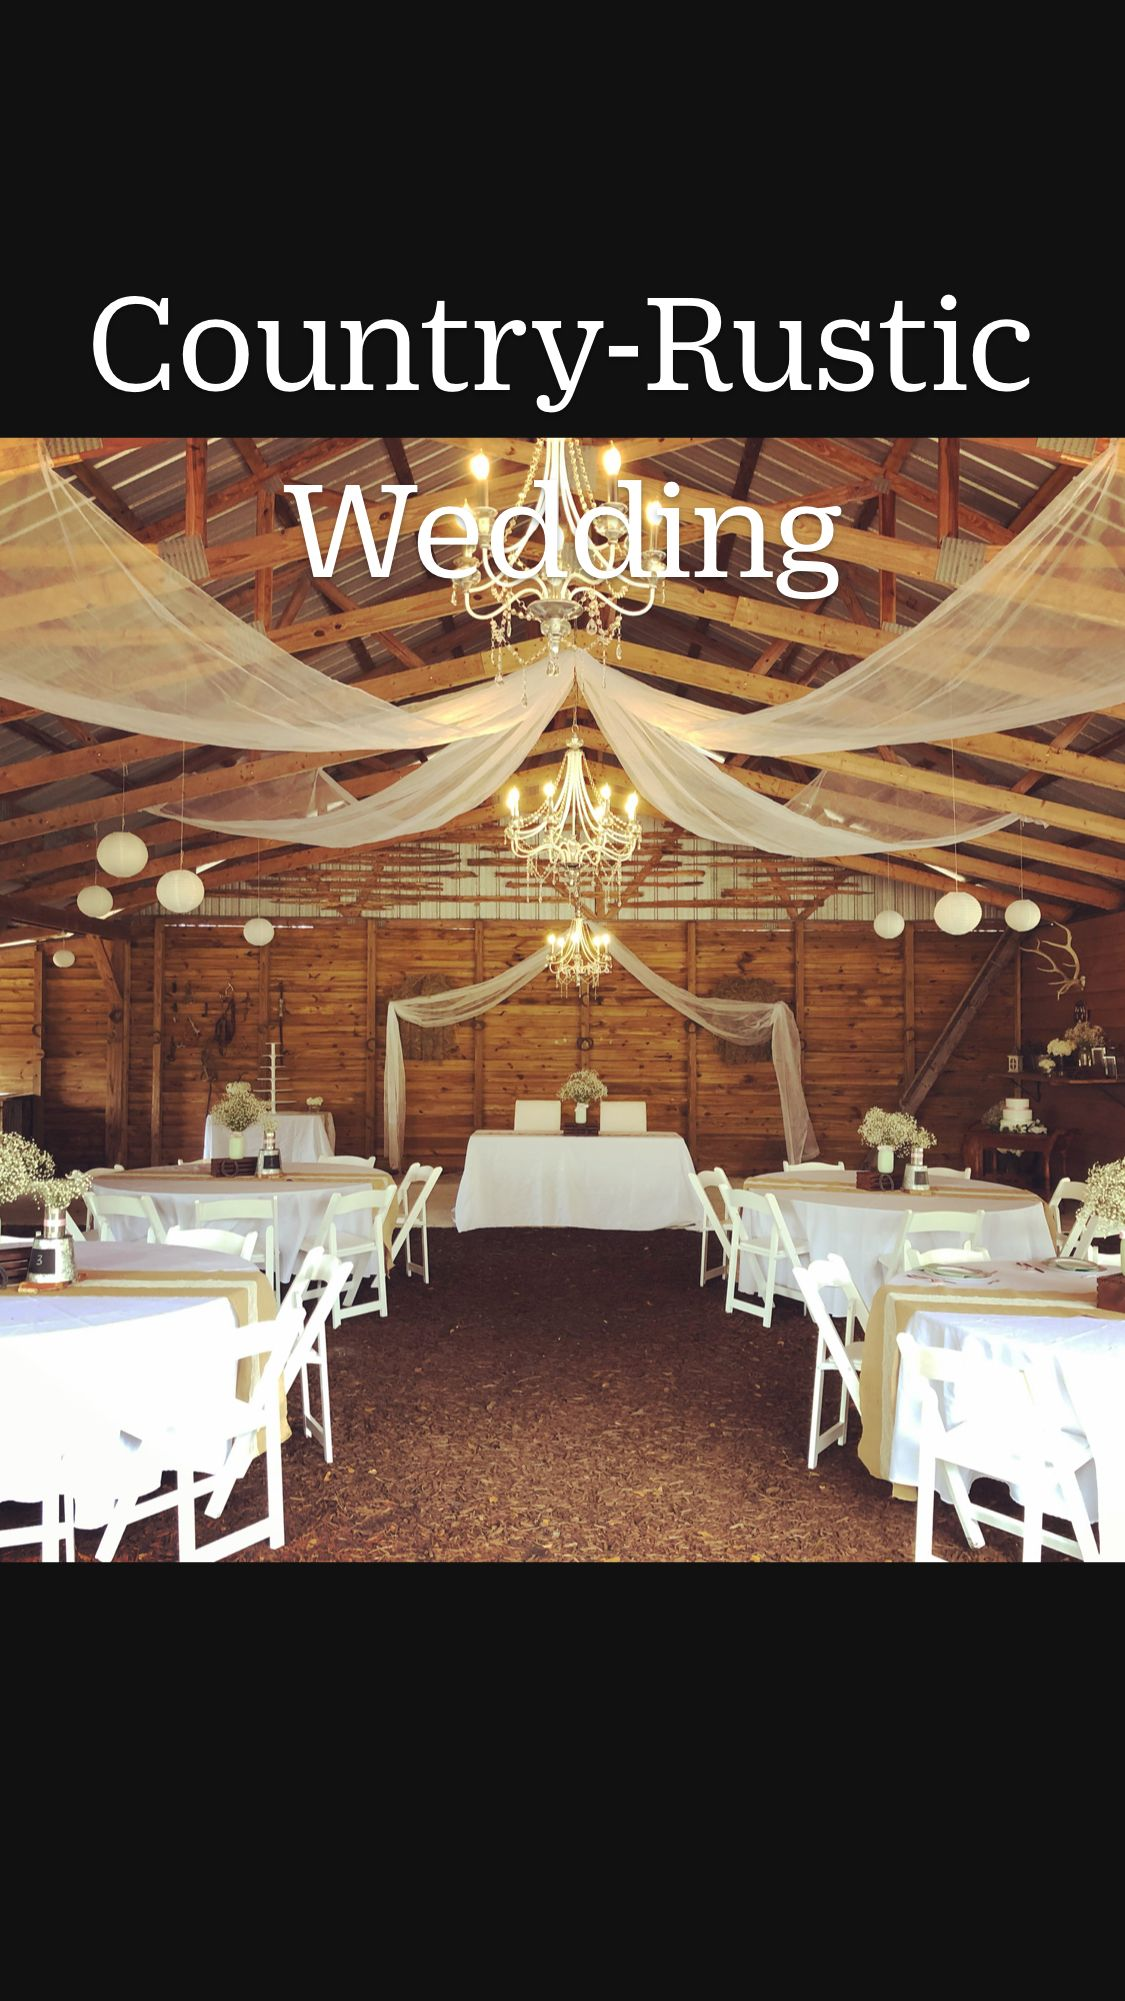 Country-Rustic Wedding